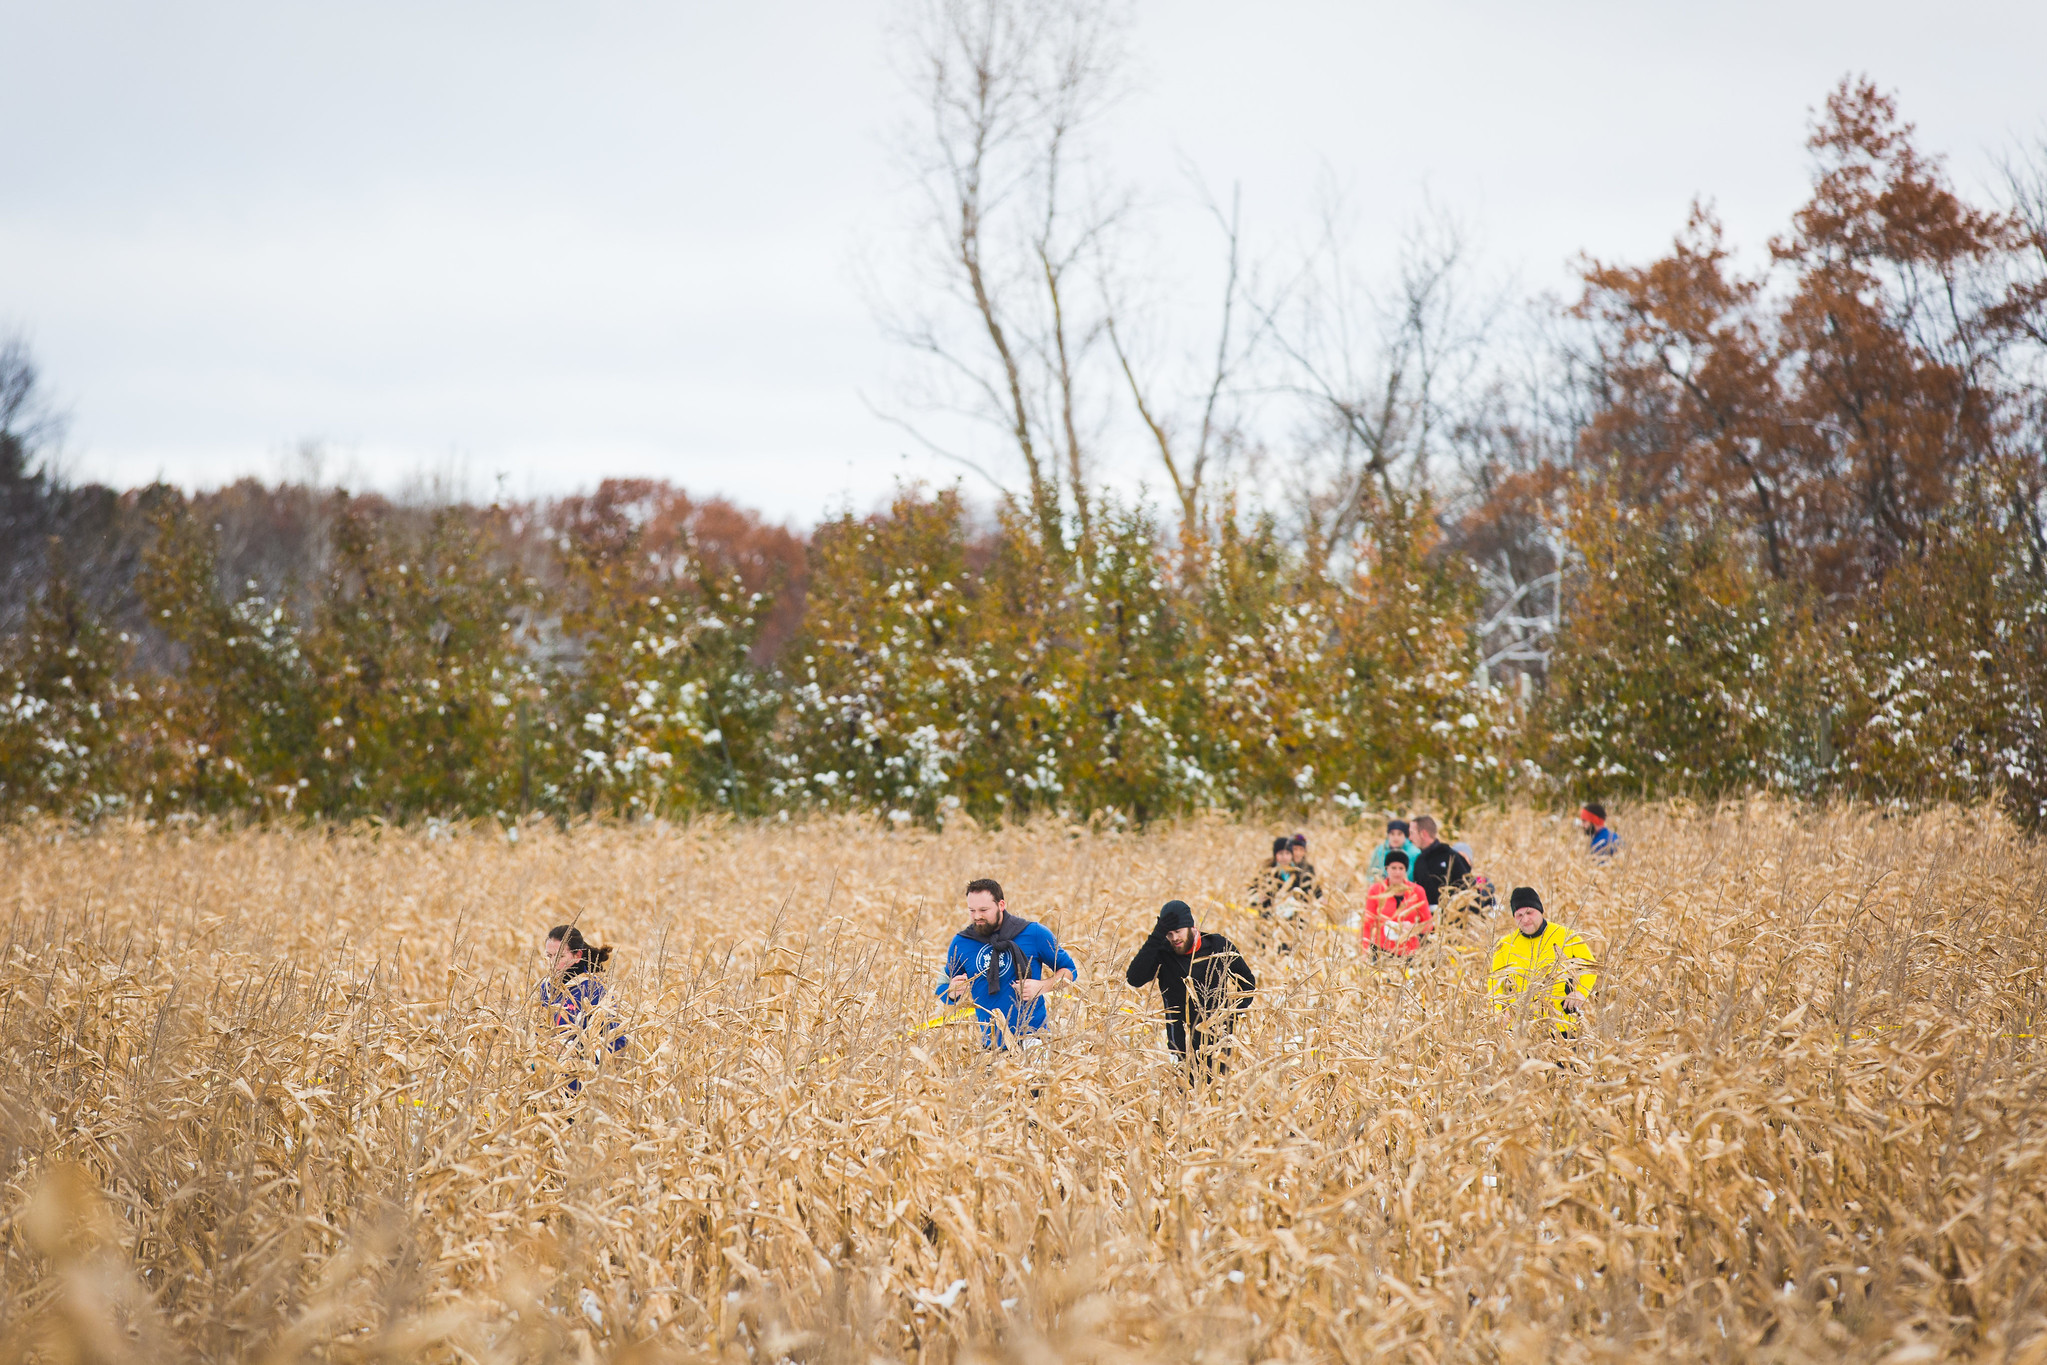 Dirty Duel trail race lets runners choose path through woods, Robinette's corn maze